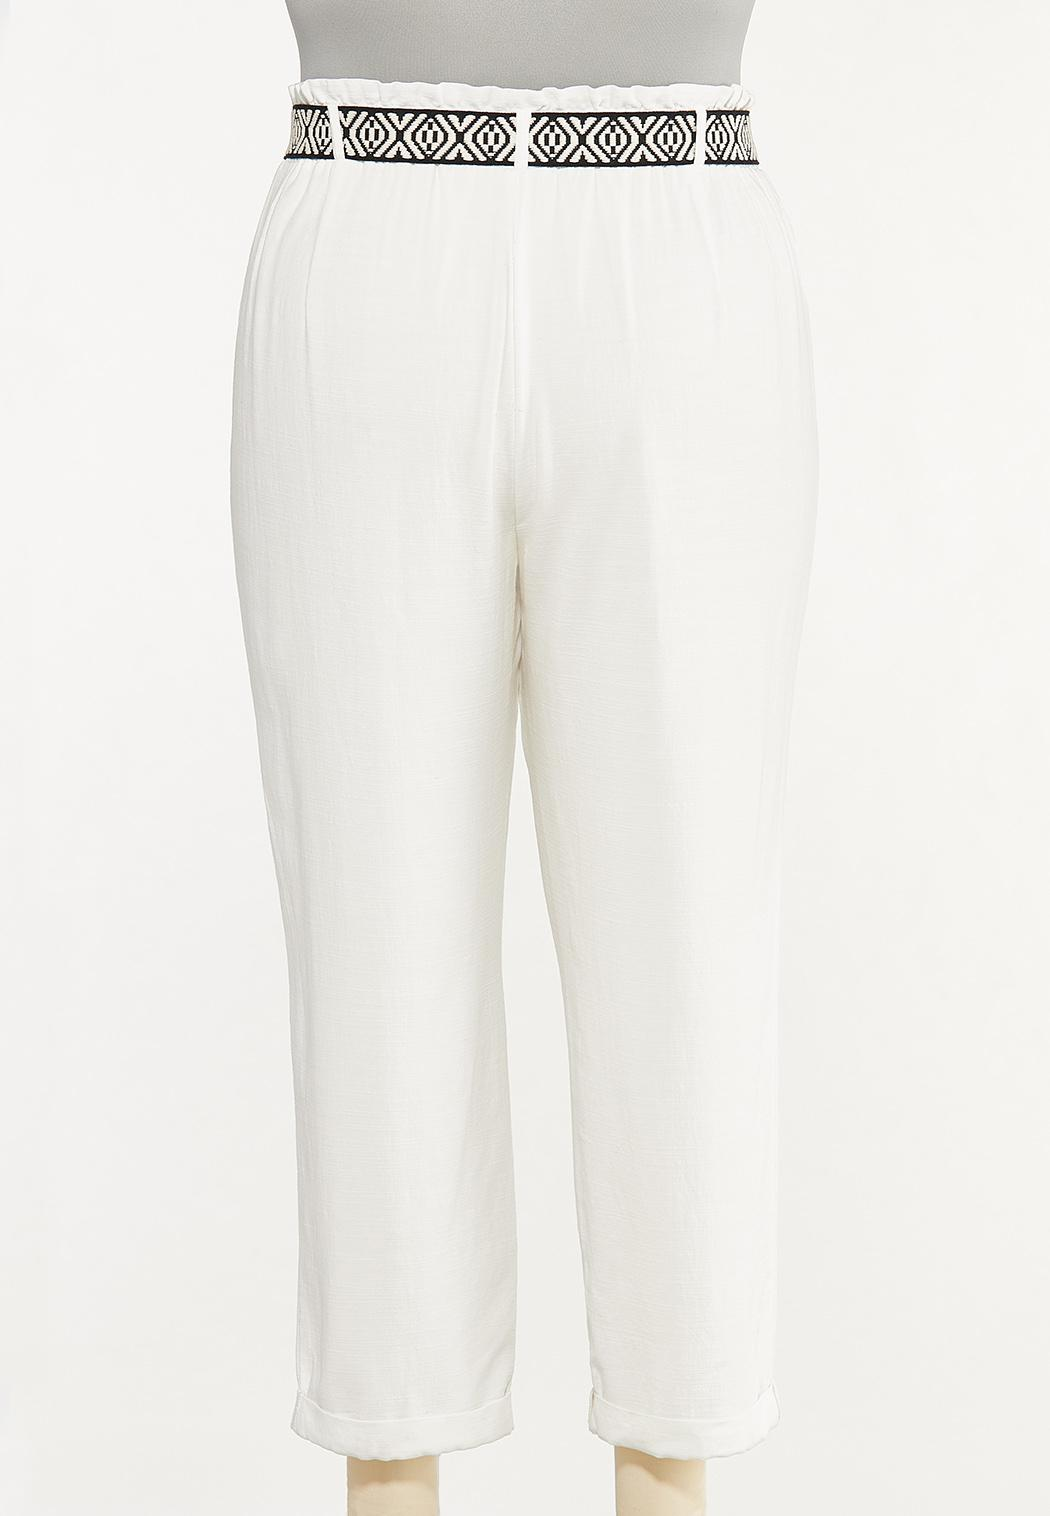 Plus Size Breezy White Belted Pants (Item #44620824)